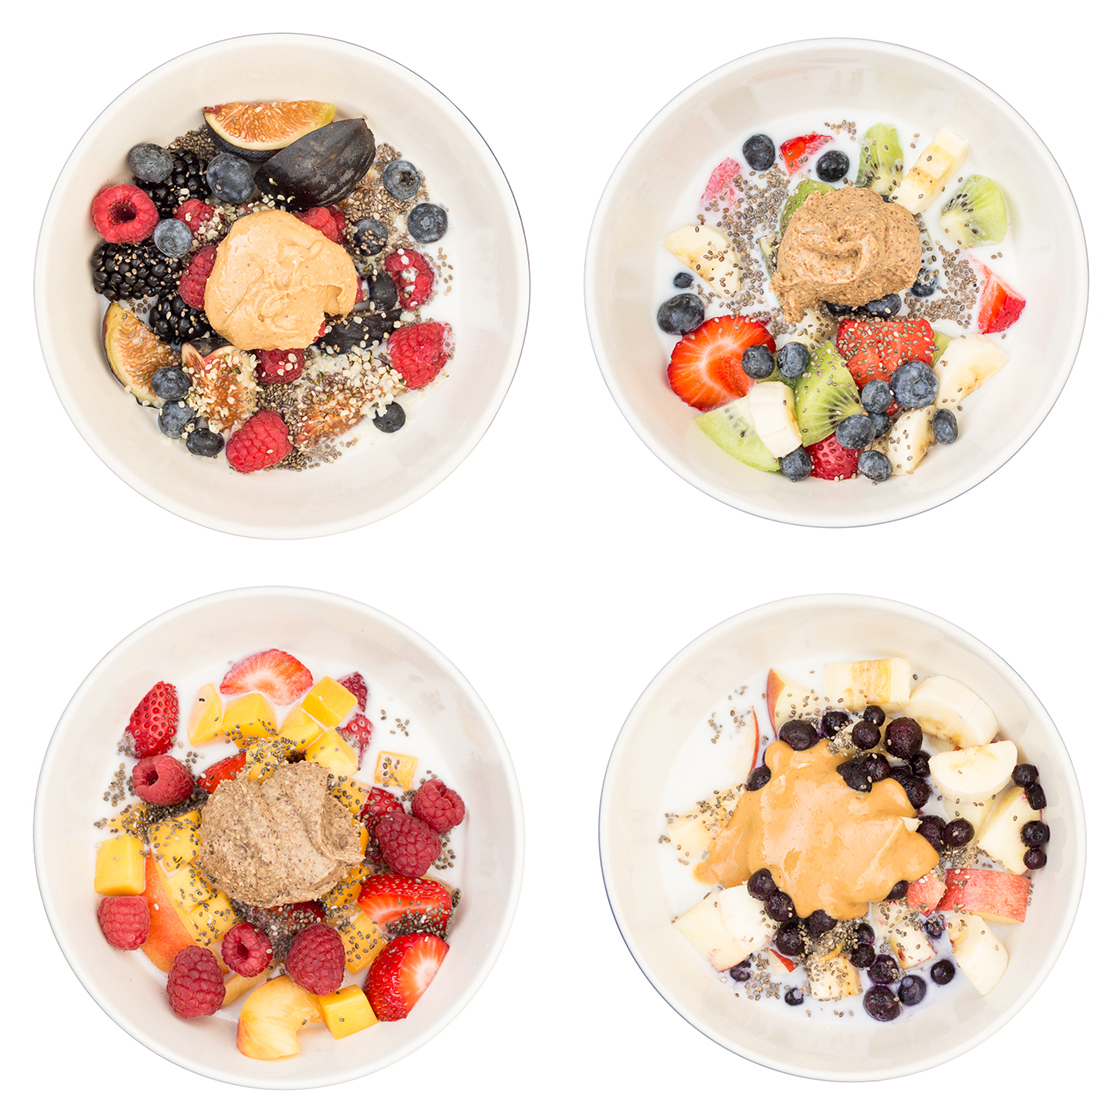 Healthy Breakfast Fruit Cereal + 4 Whole Food Cereals